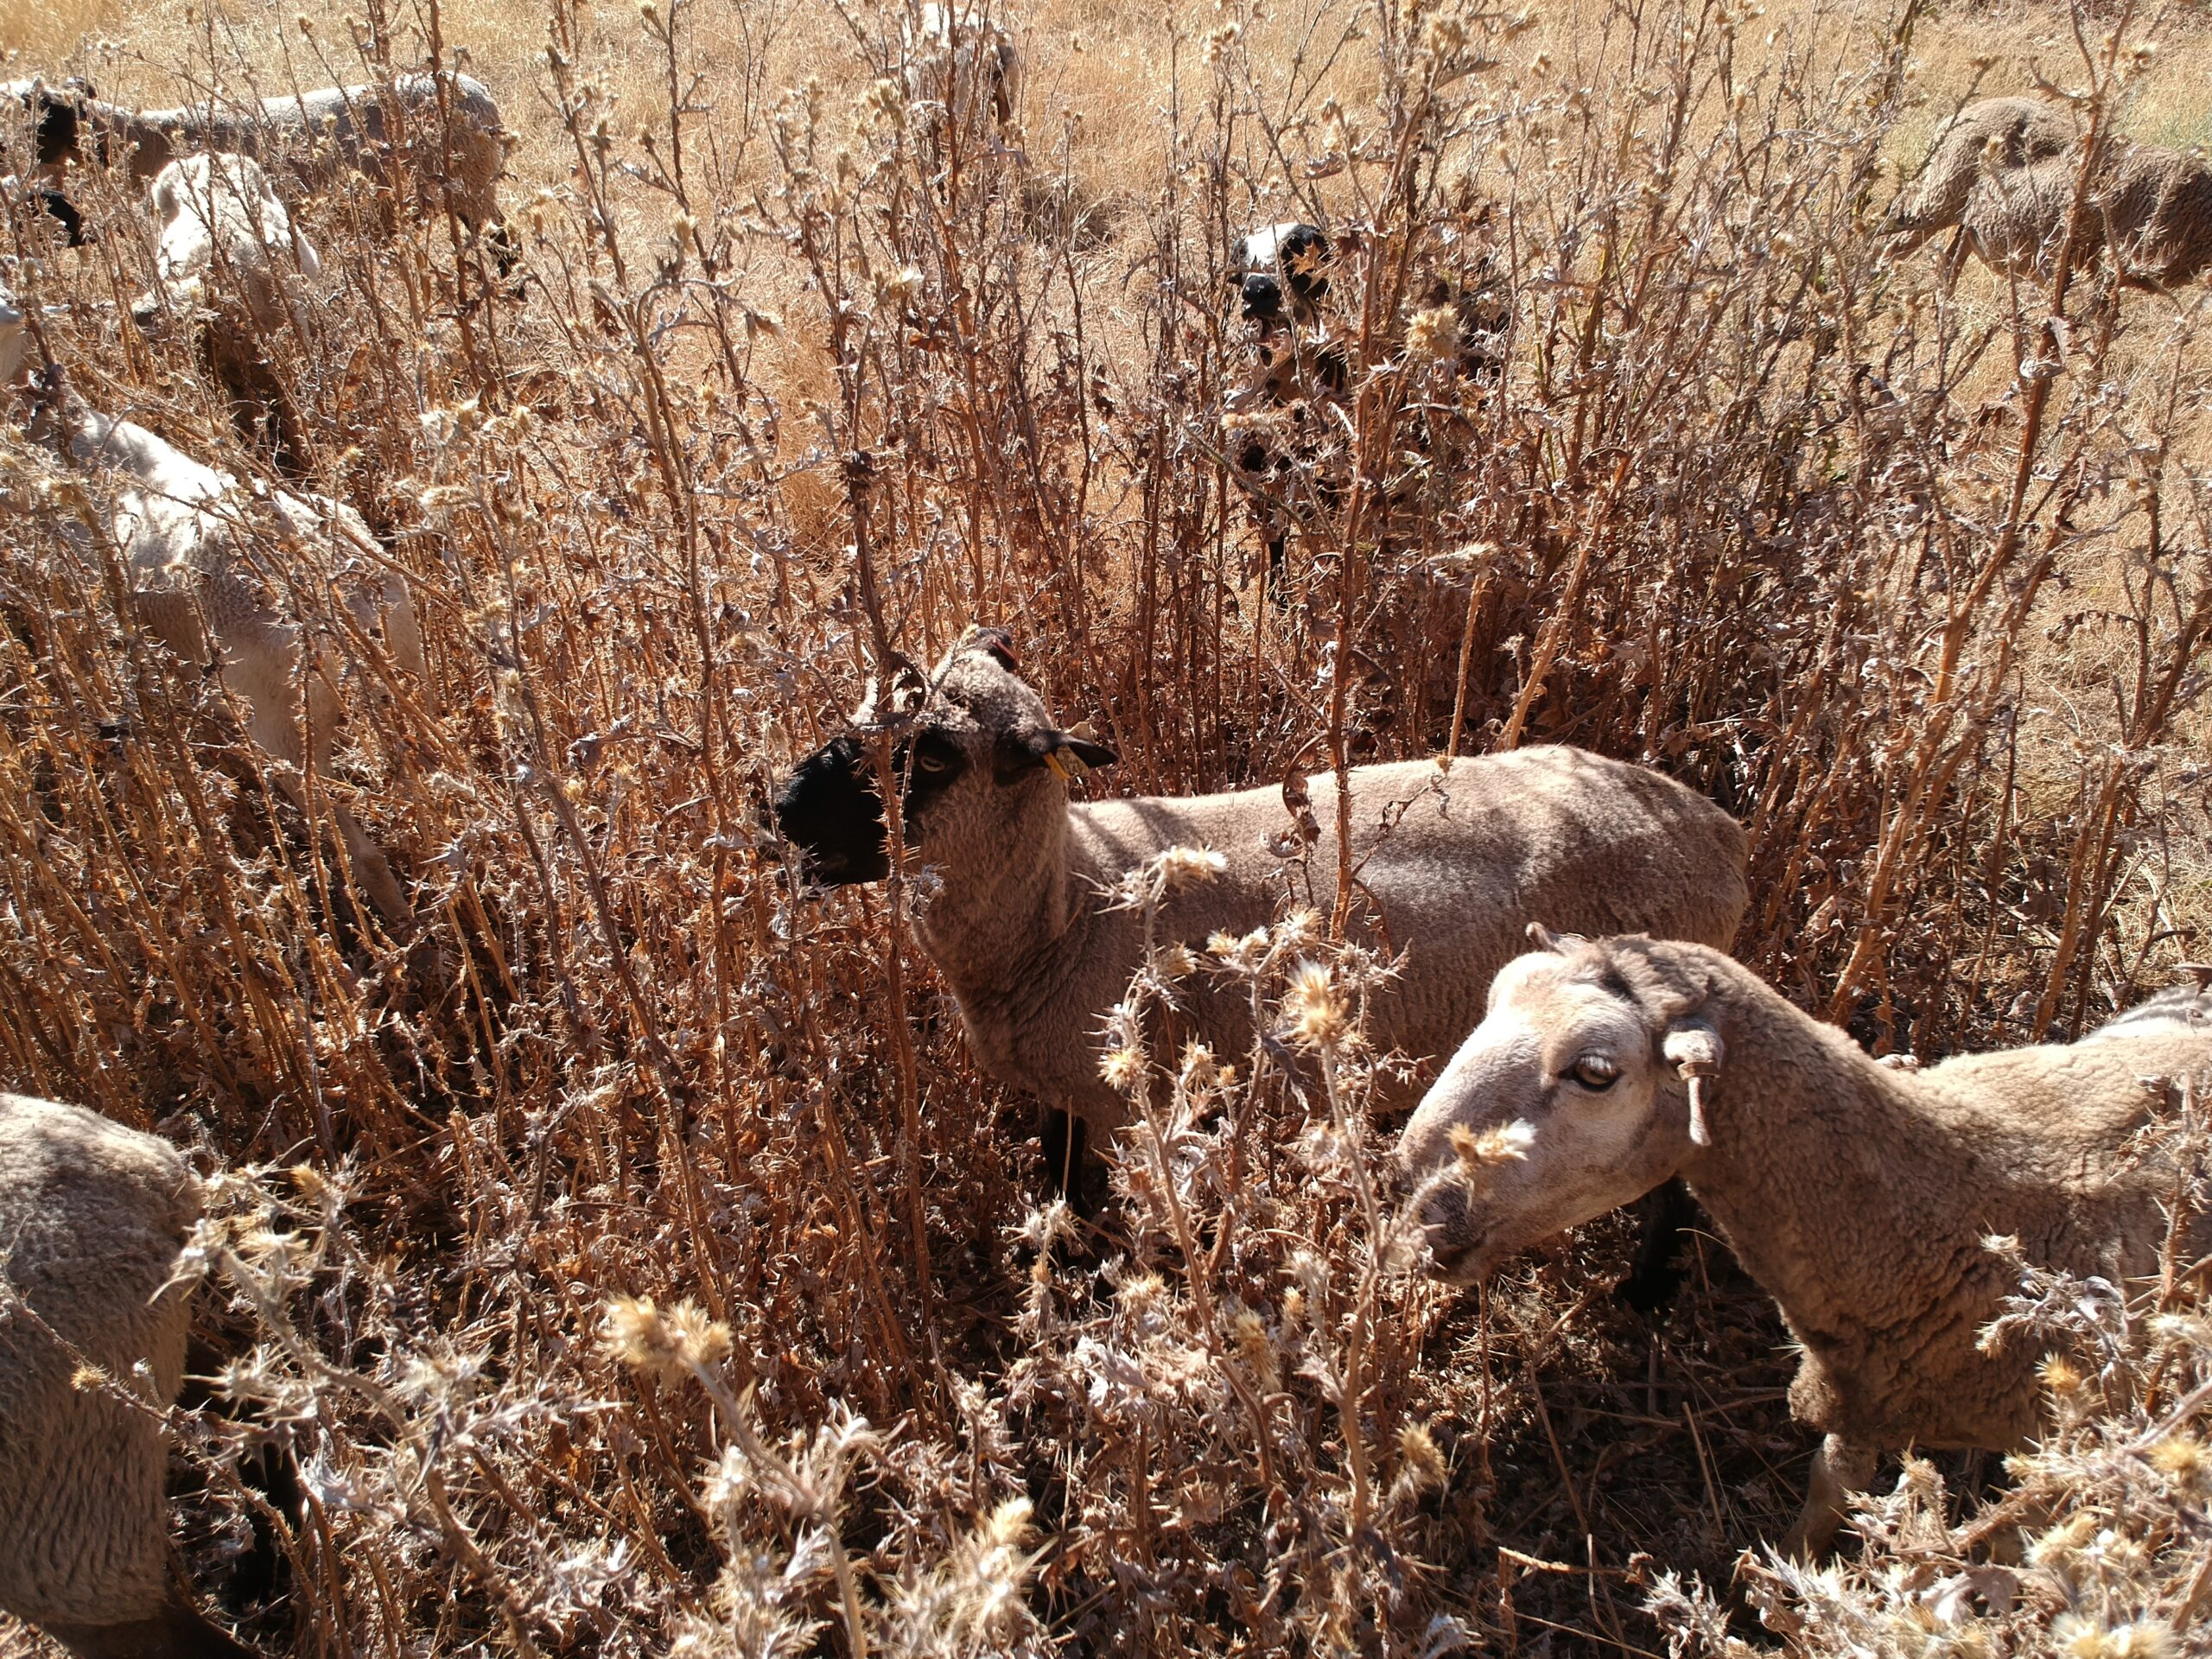 flock of sheep in dry thistles